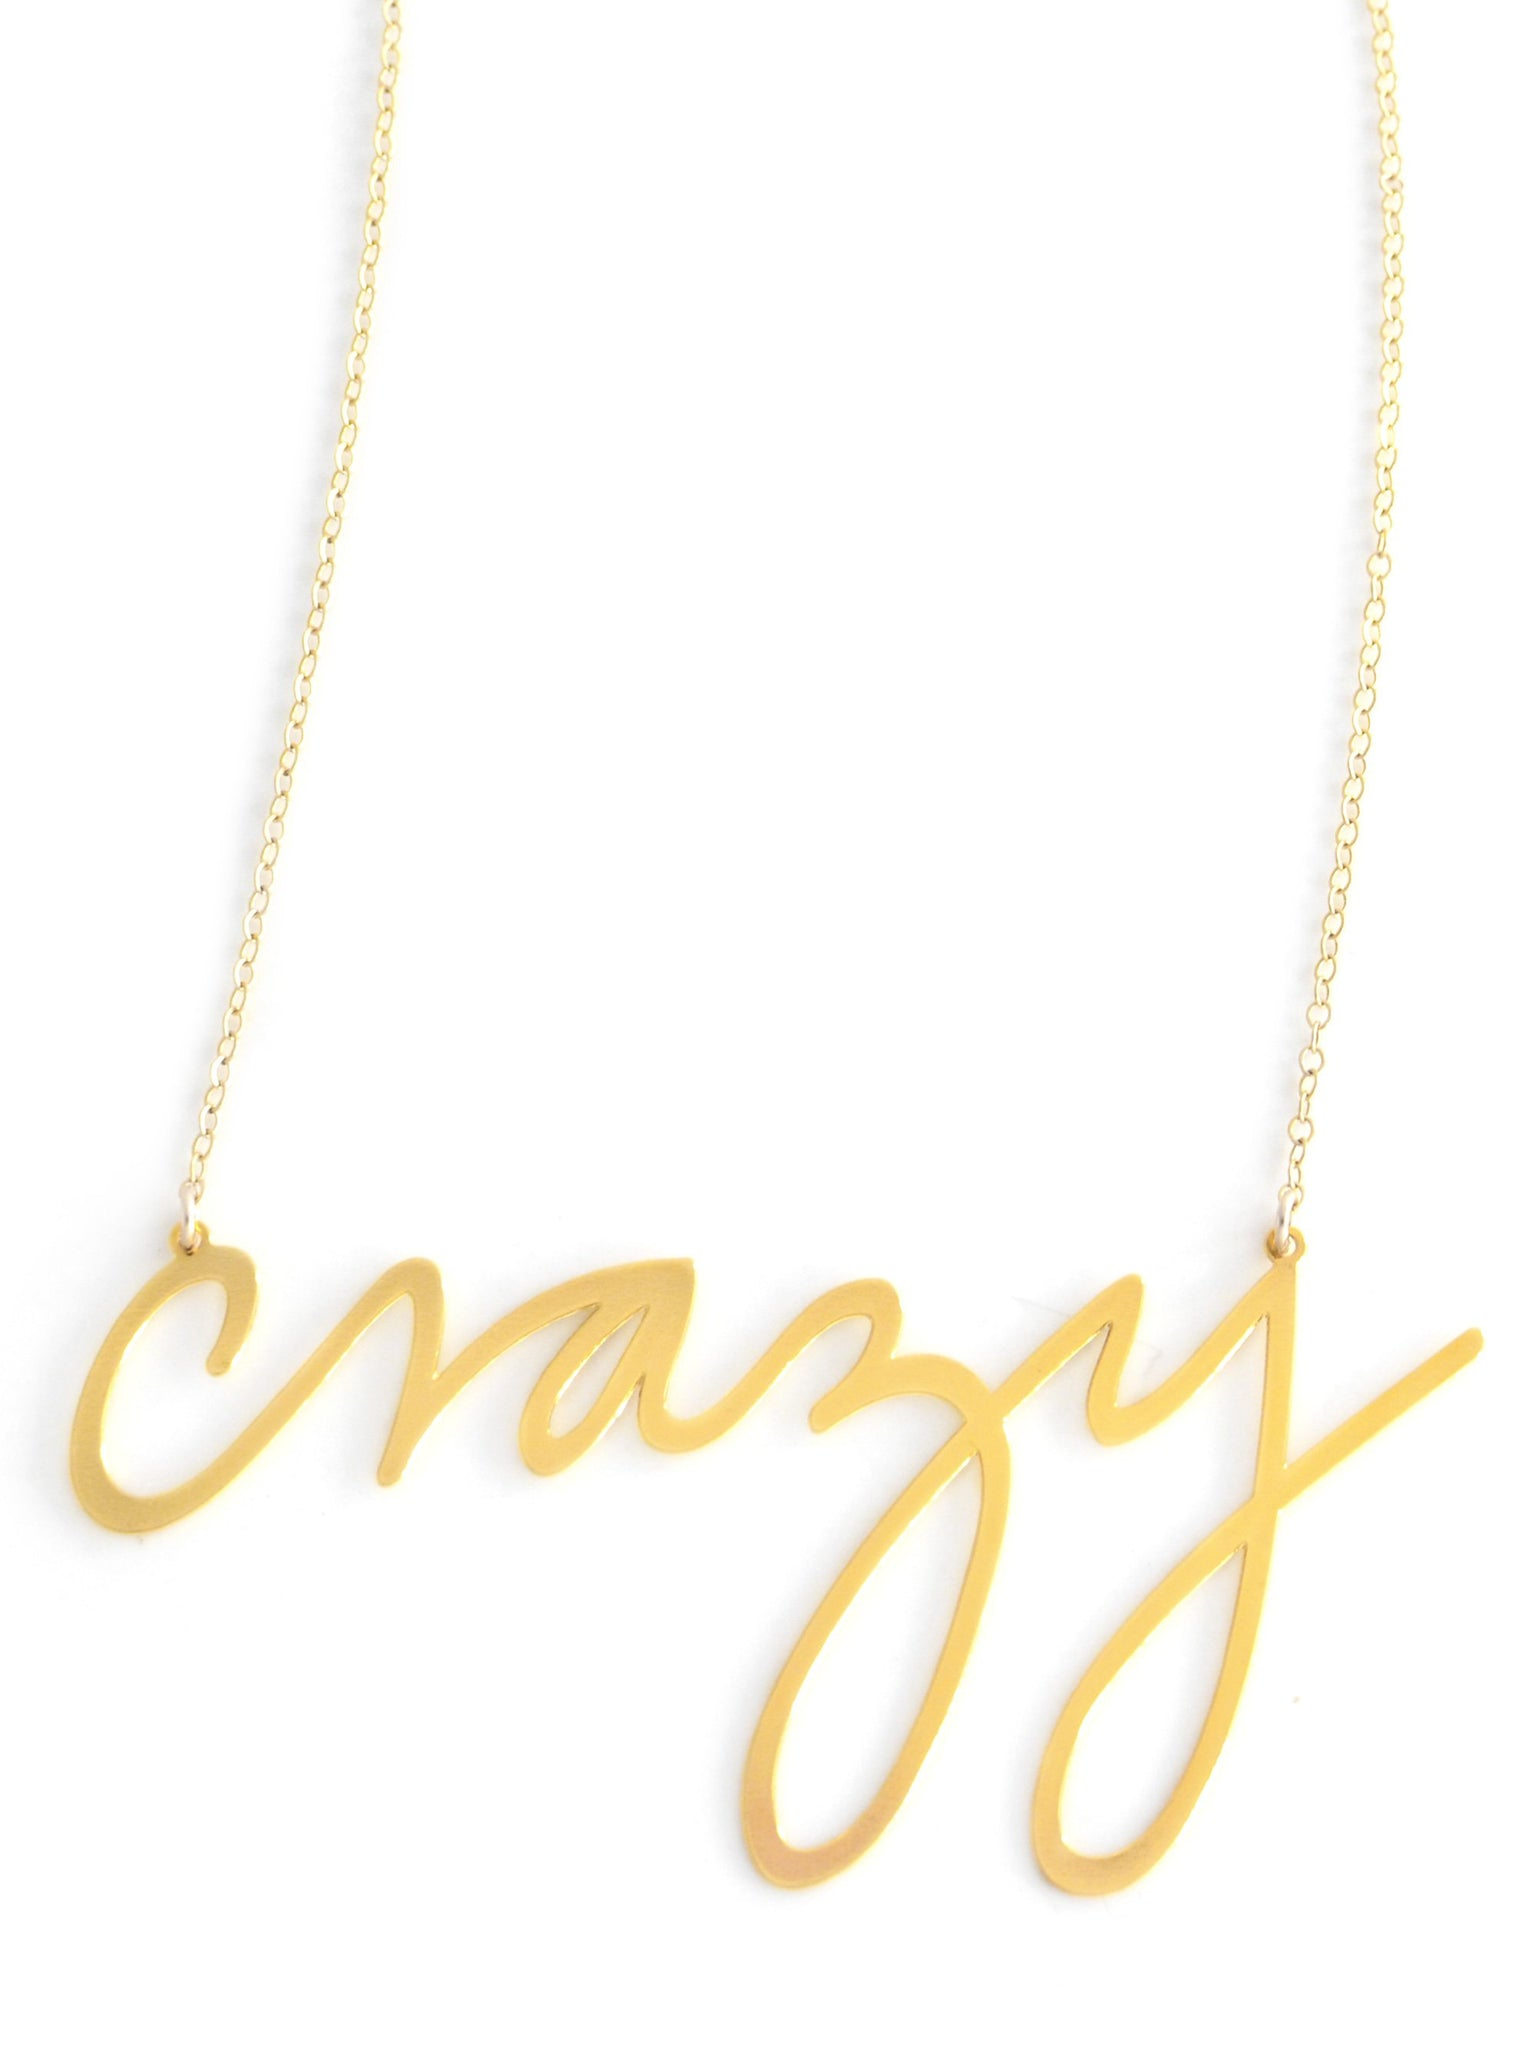 Crazy Necklace - Brevity Jewelry - Made in USA - Affordable Gold and Silver Jewelry